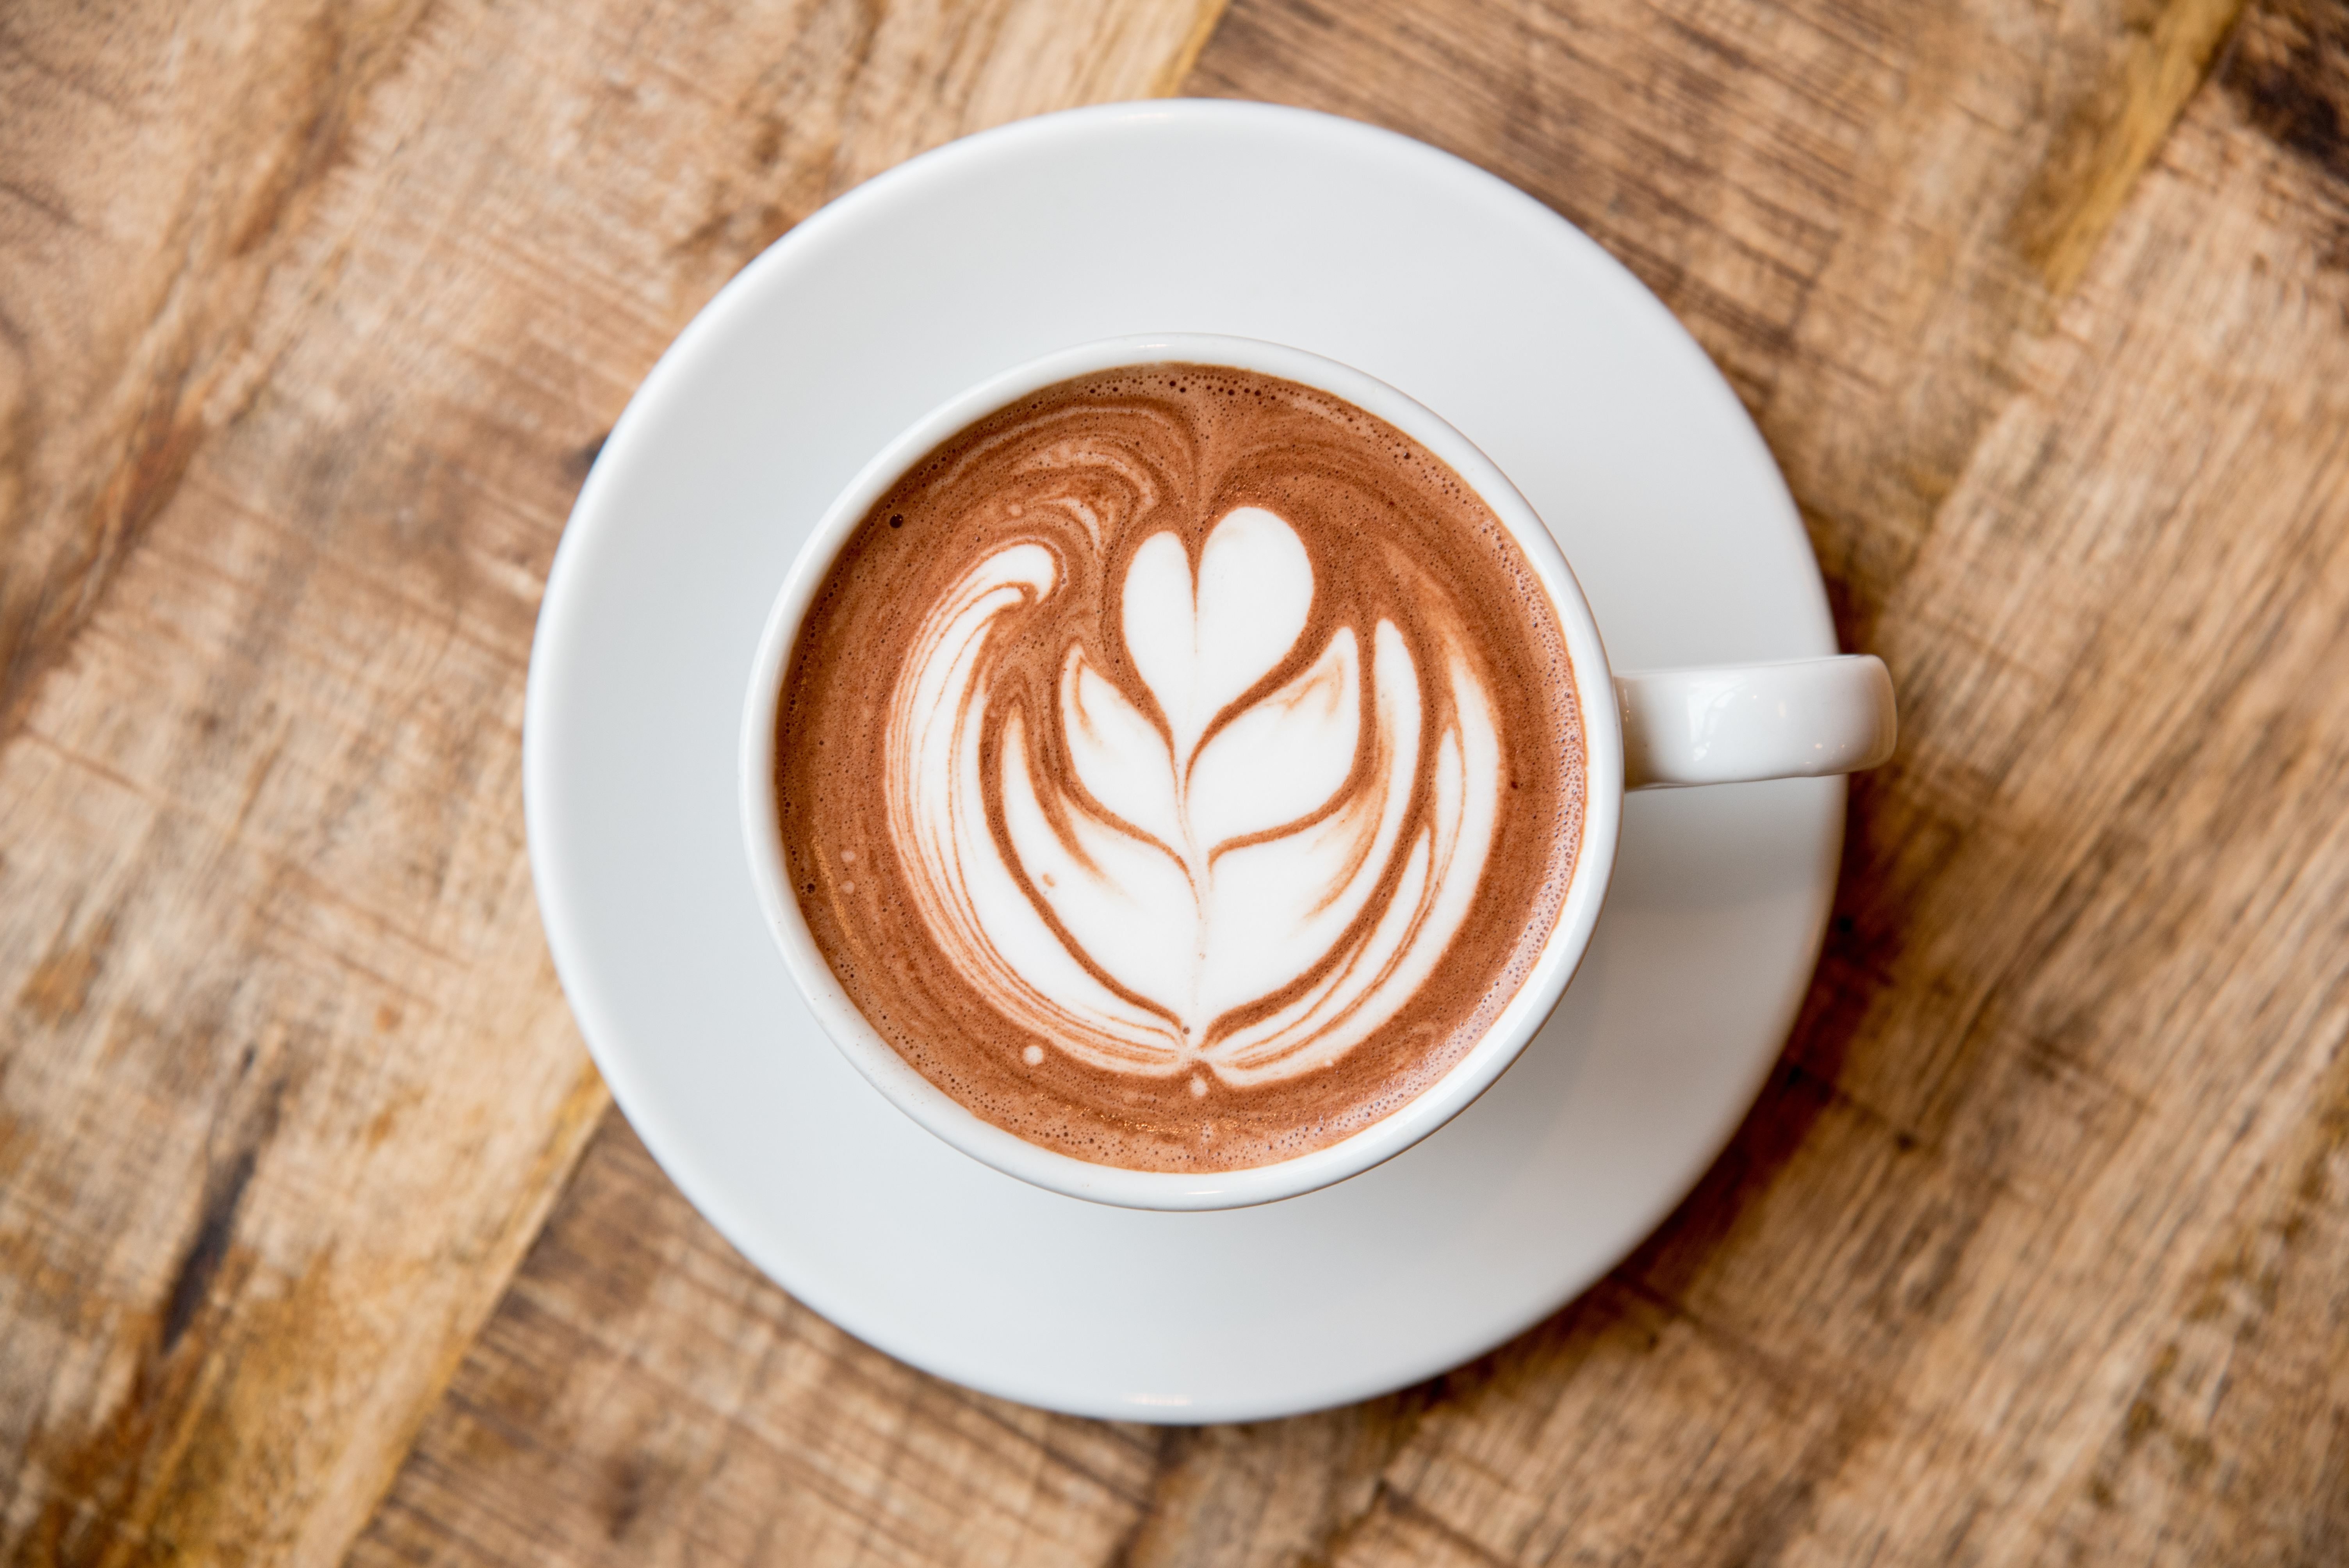 A large white mug holds dark hot chocolate with white latte art heart and leaves.